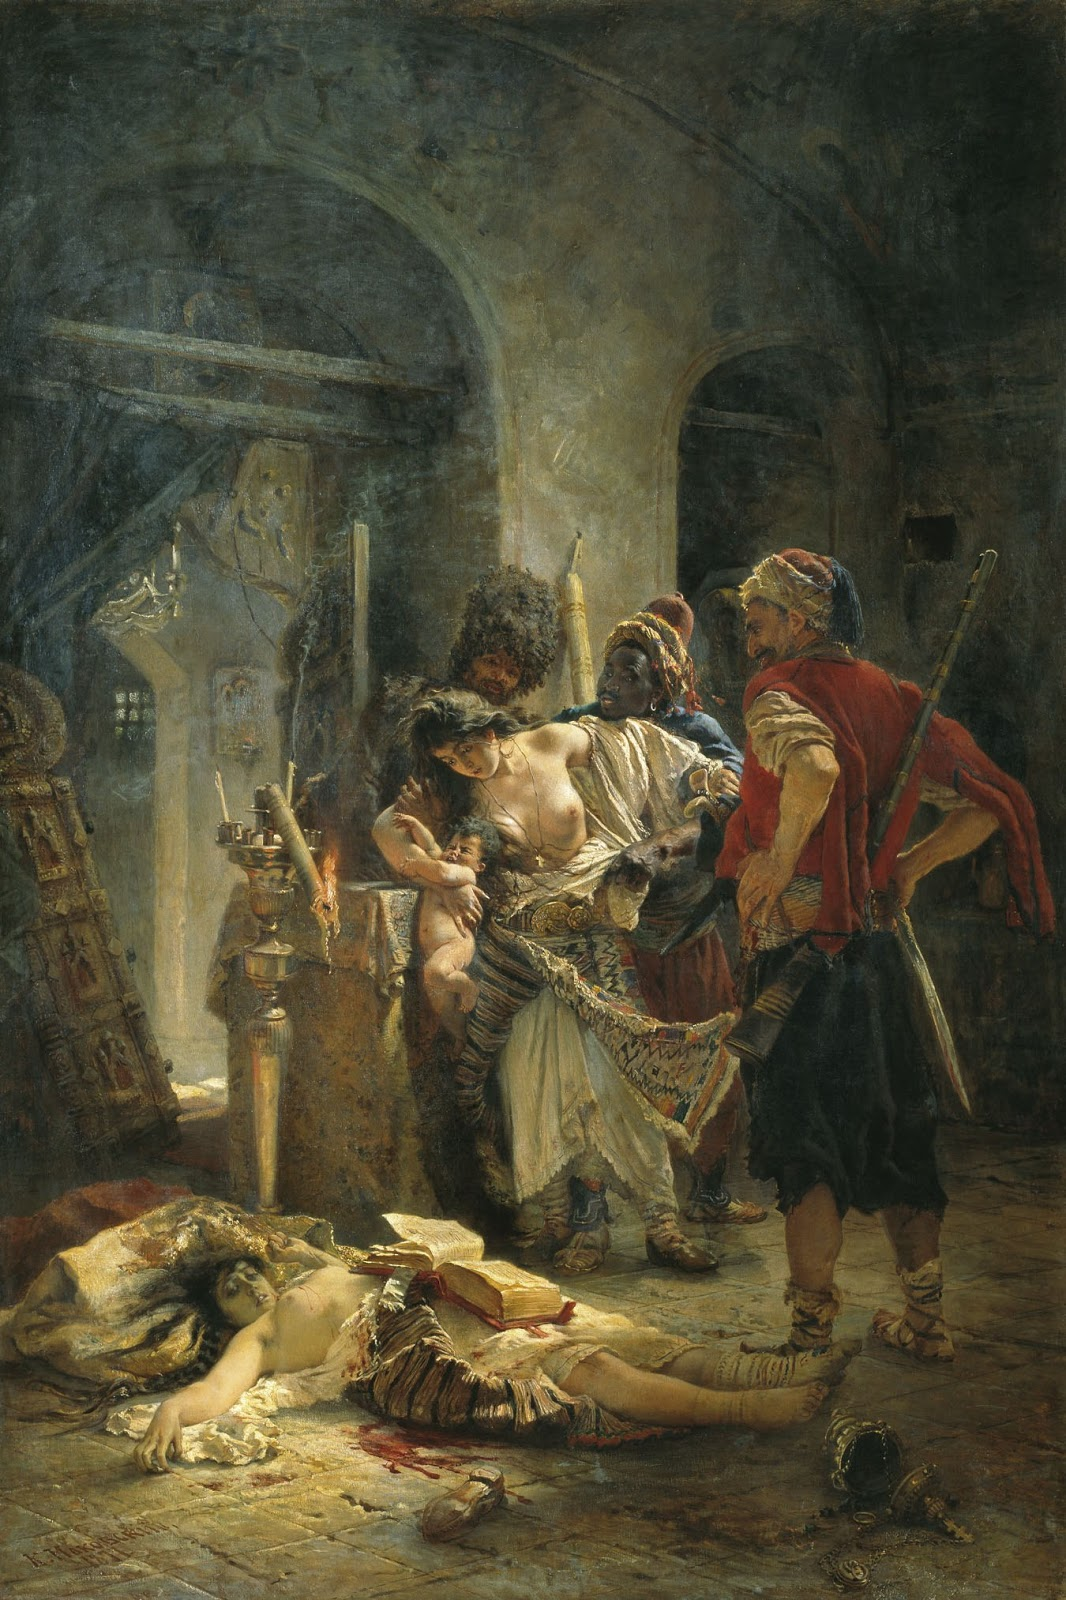 The Bulgarian martyresses by Konstantin Makovsky, a painting depicting the rape of Bulgarian women by the Bashi-bazouk during the April Uprising.